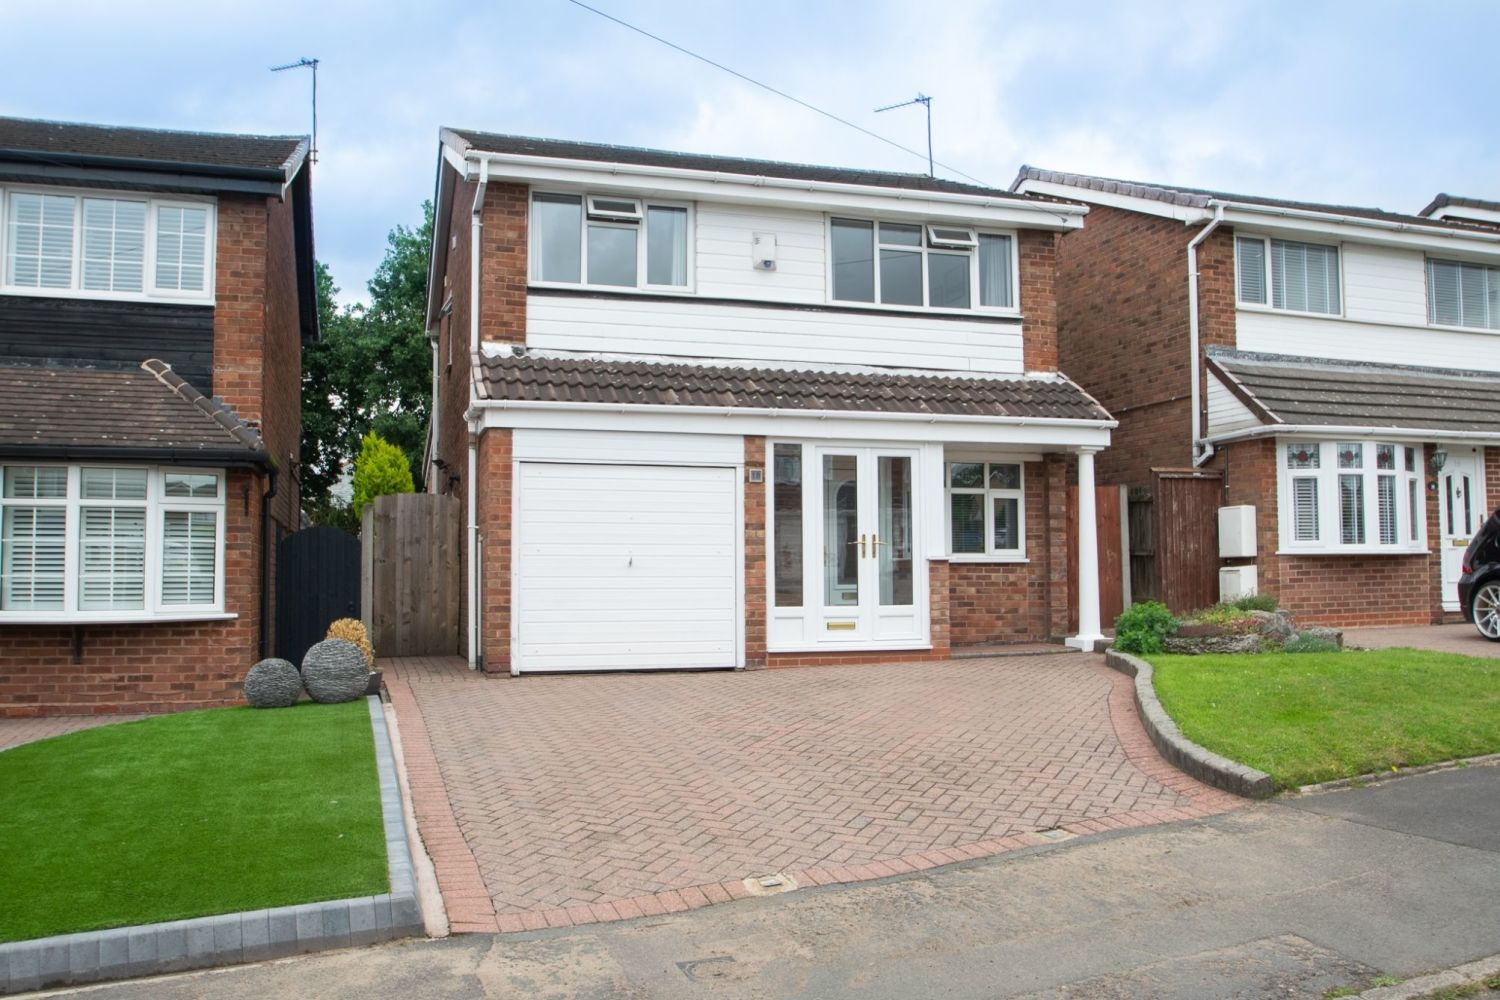 3 bed detached for sale in Clyde Avenue, Halesowen - Property Image 1